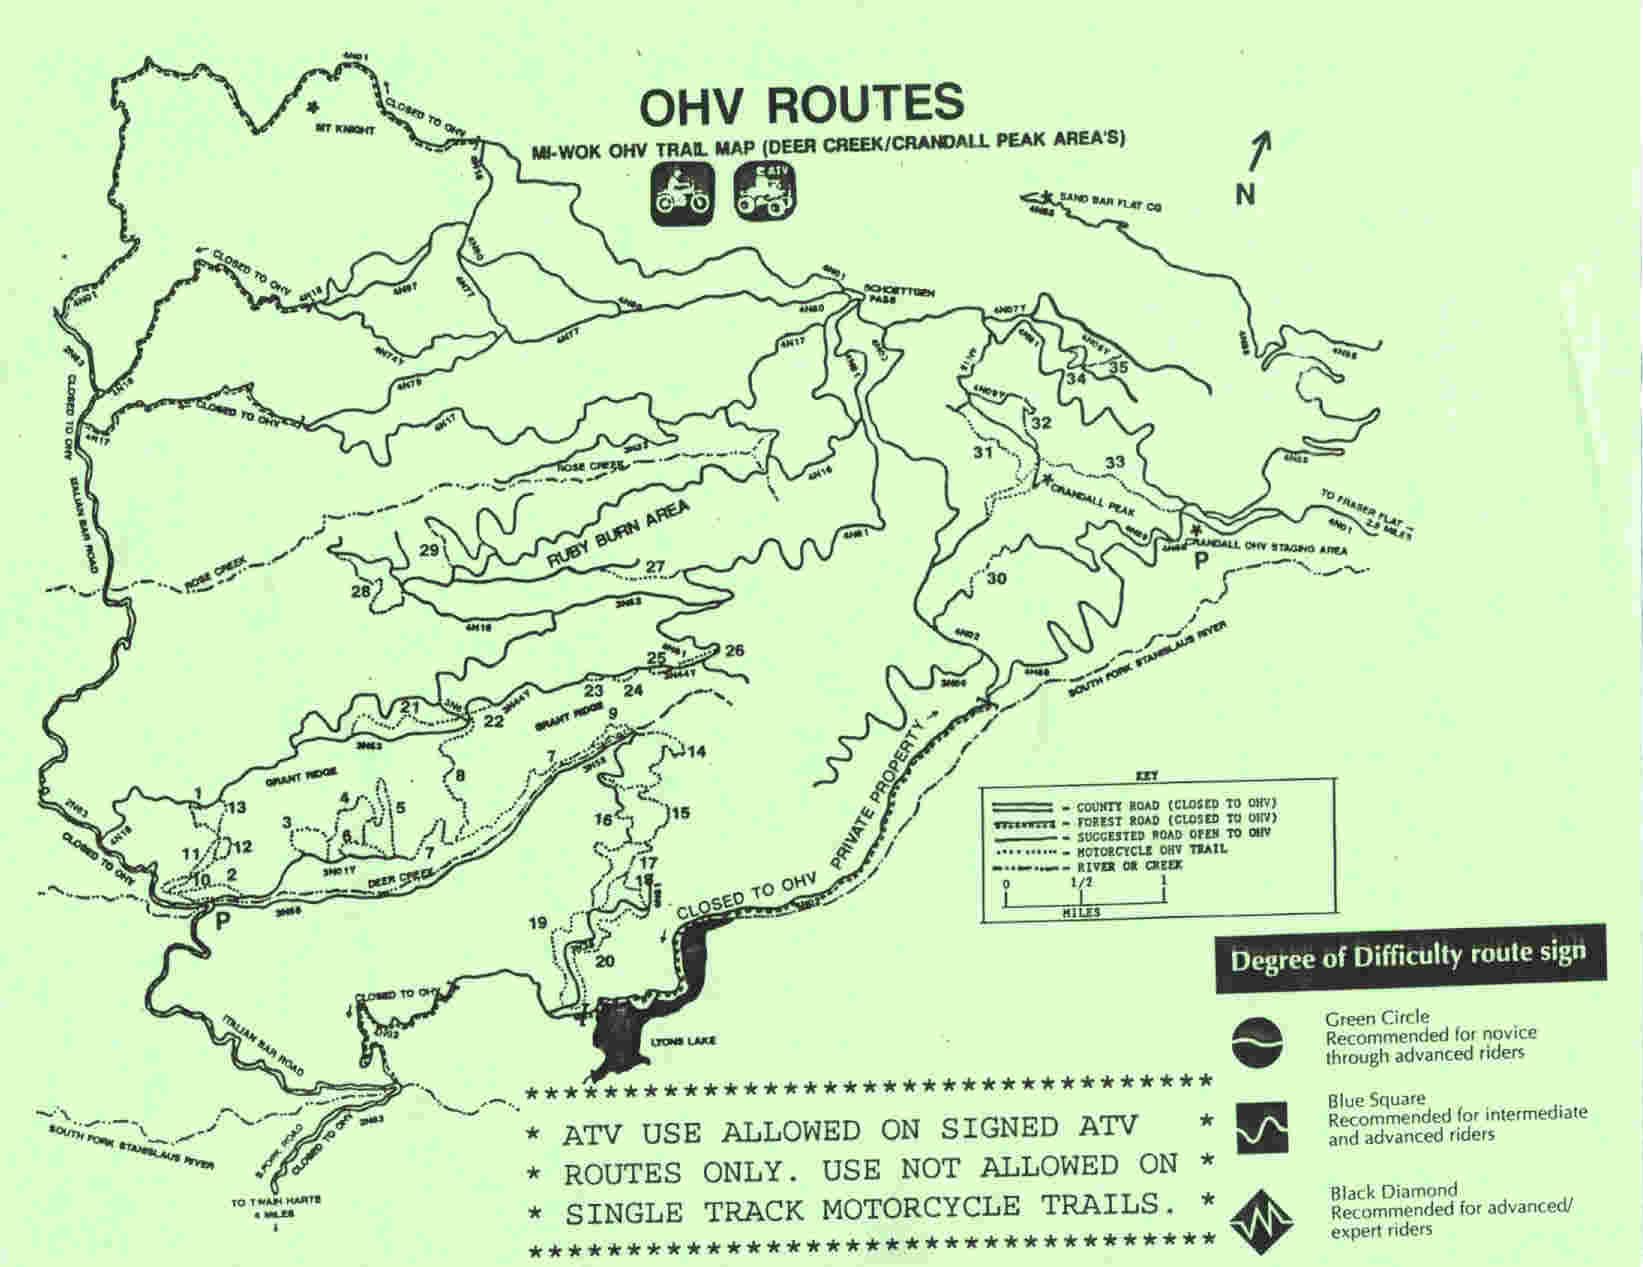 Mi Wok Ohv Trail Map Merced Ca Mappery